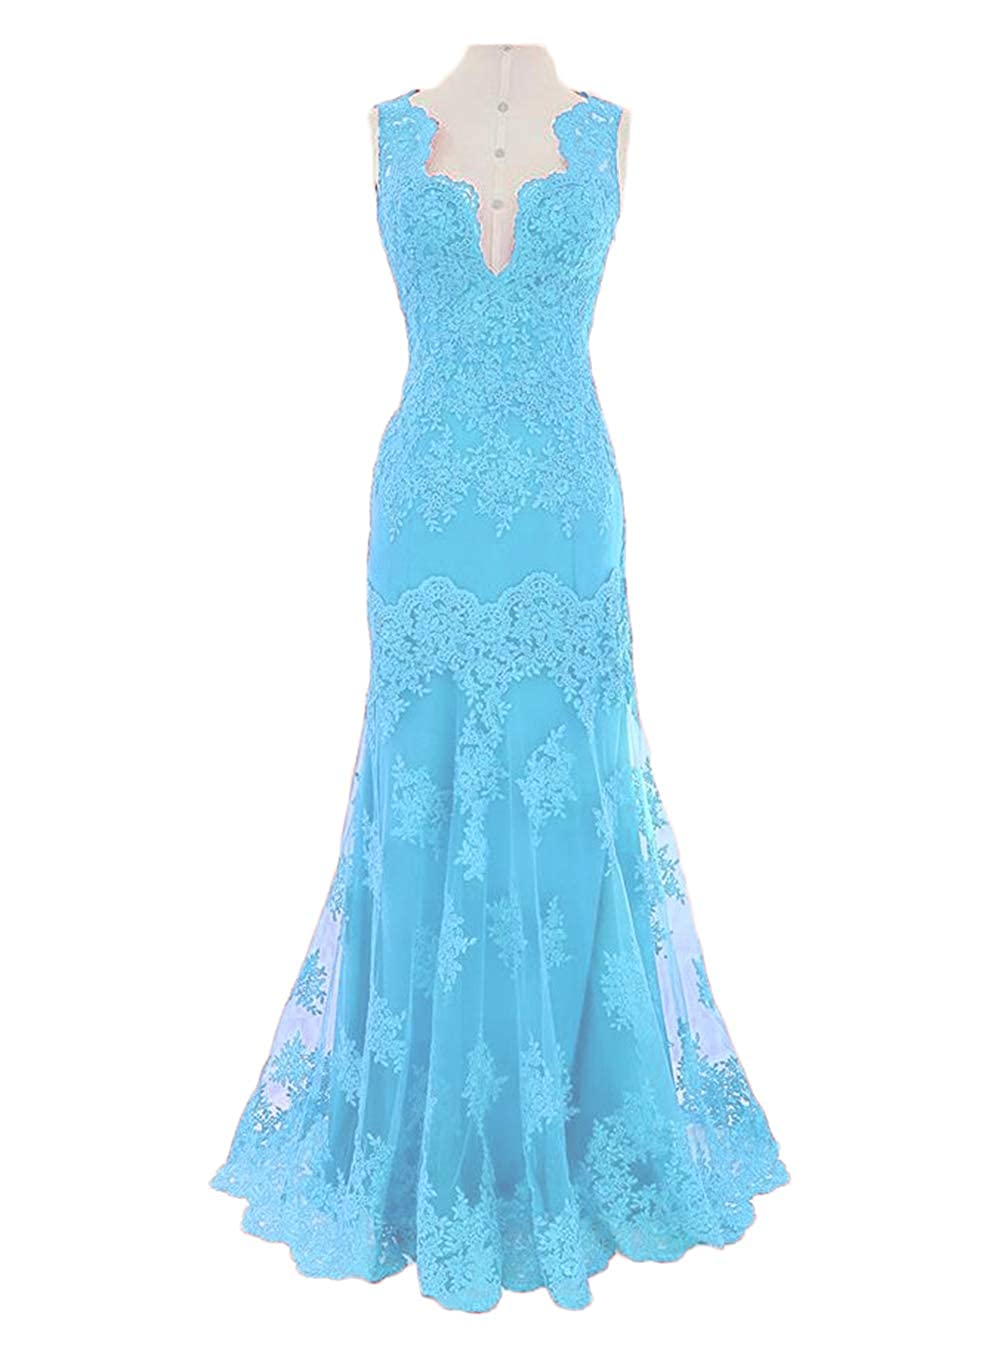 bluee alilith.Z Sexy V Neck Prom Dresses Mermaid 2019 Appliques Lace Long Formal Evening Dresses Party Gowns for Women